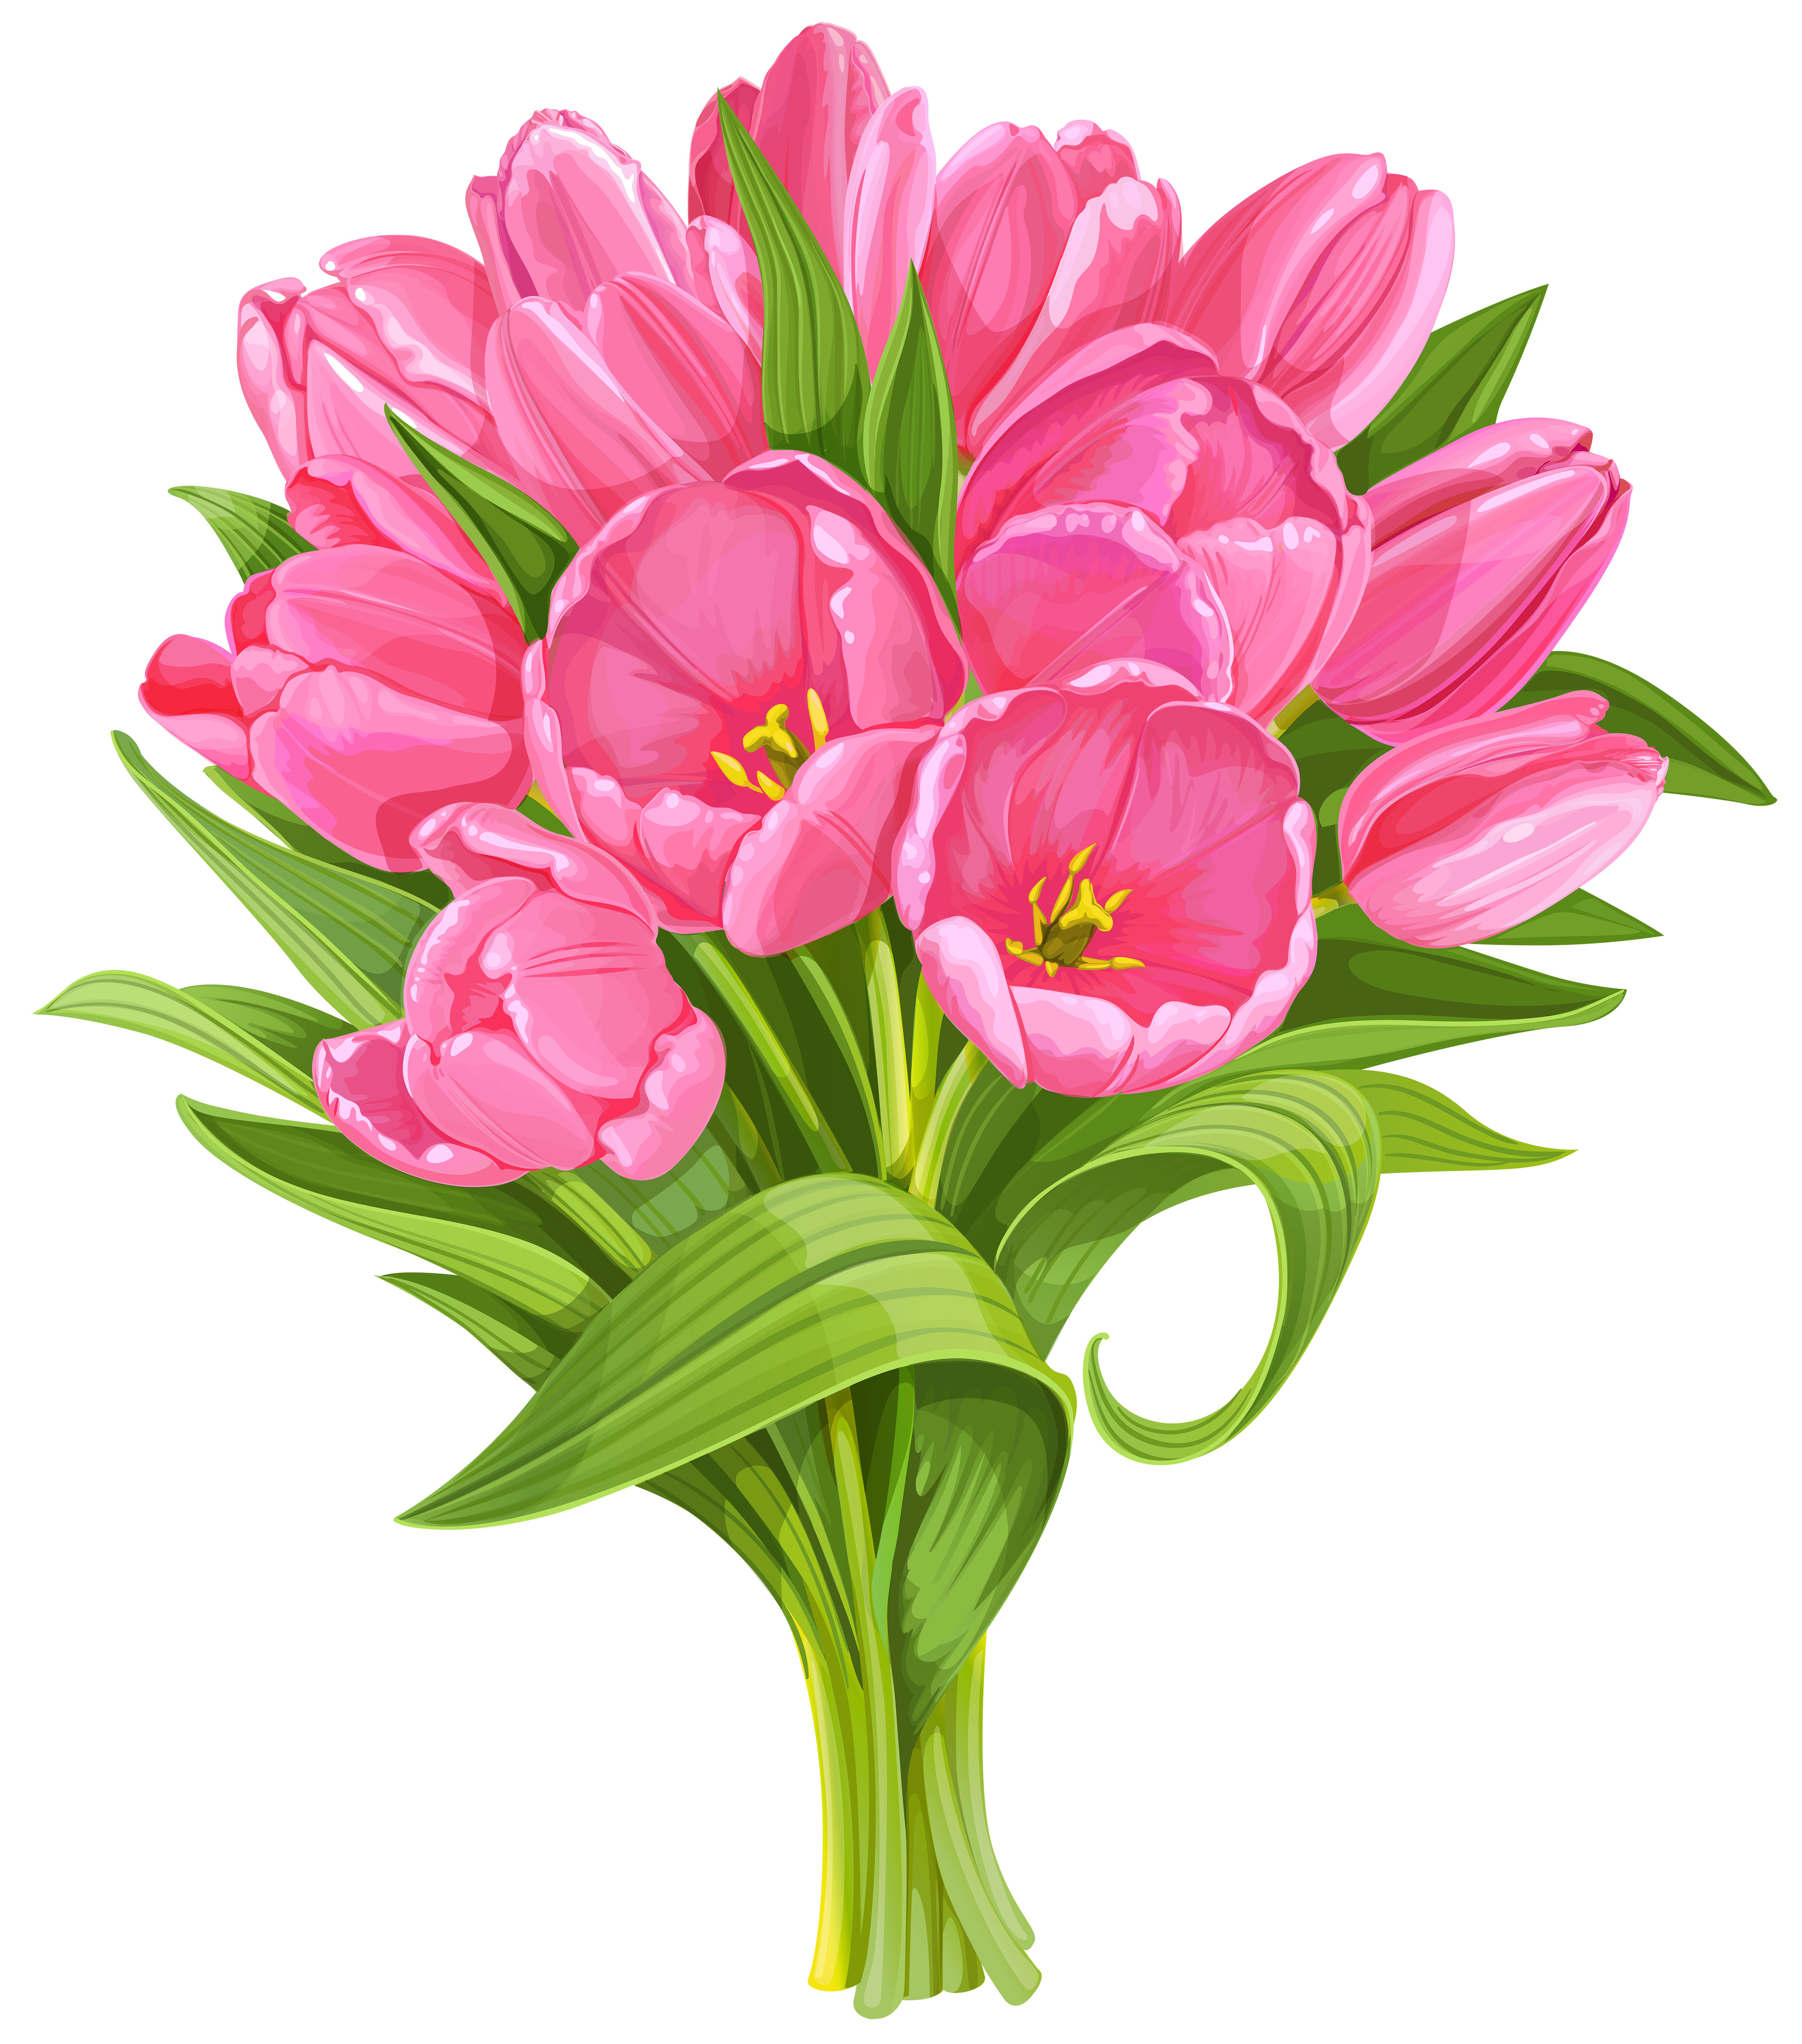 Free Tulip Bouquet Cliparts, Download Free Clip Art, Free.